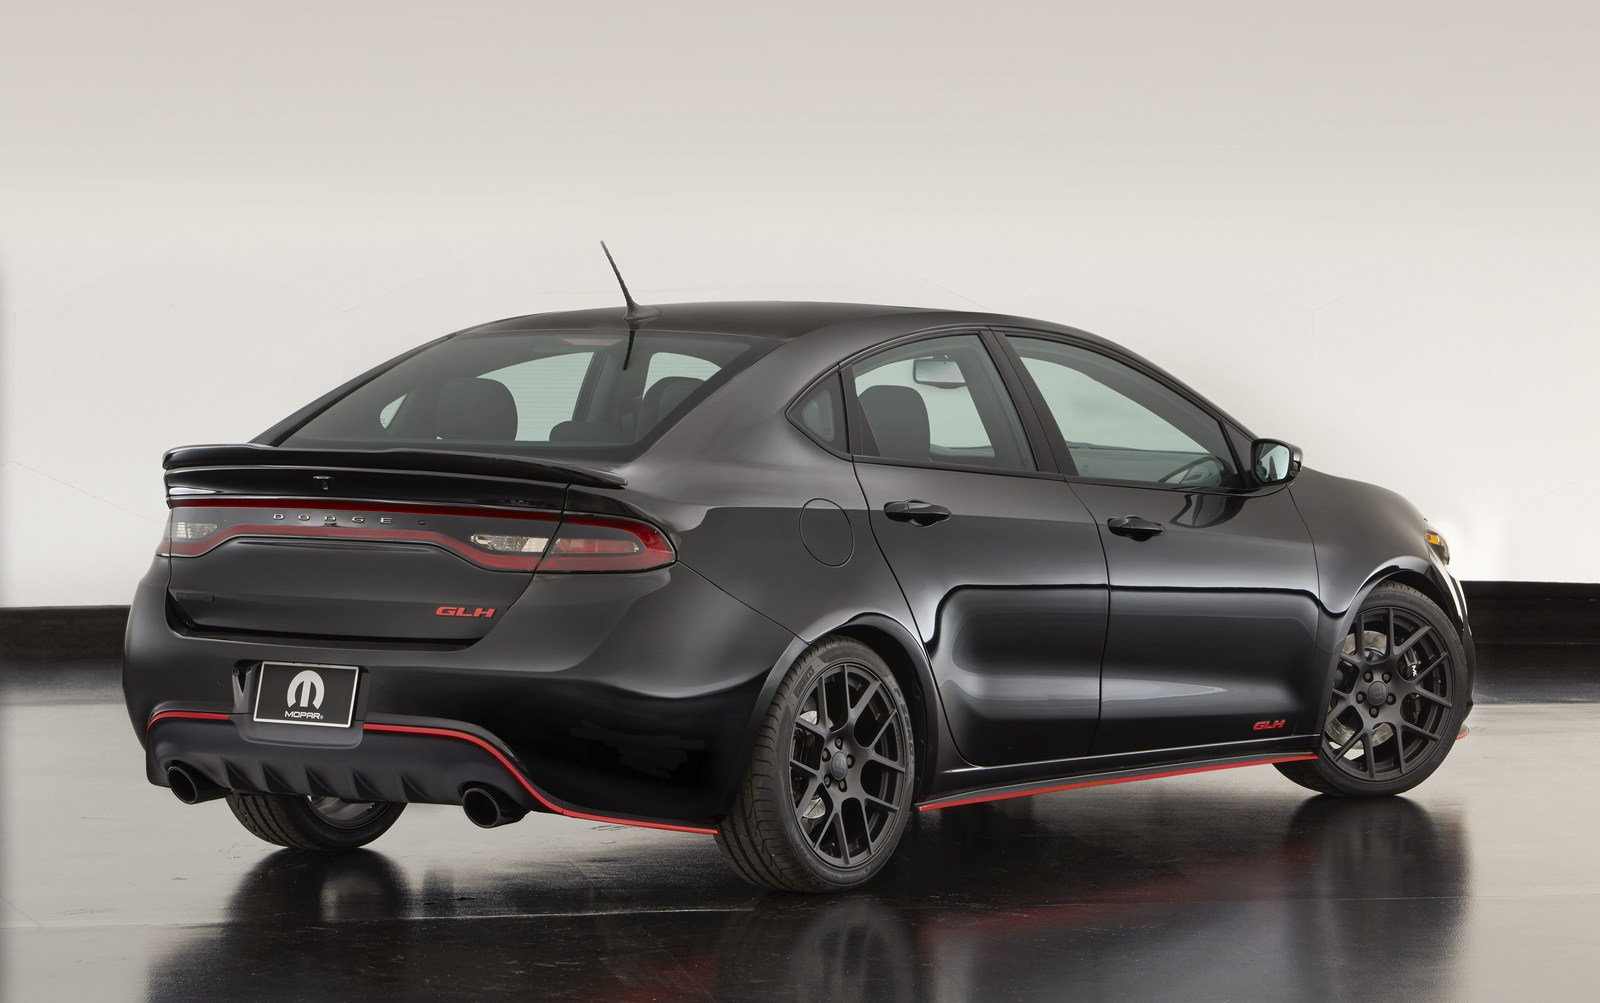 2015 dodge dart glh concept picture 653888 car review top speed. Black Bedroom Furniture Sets. Home Design Ideas